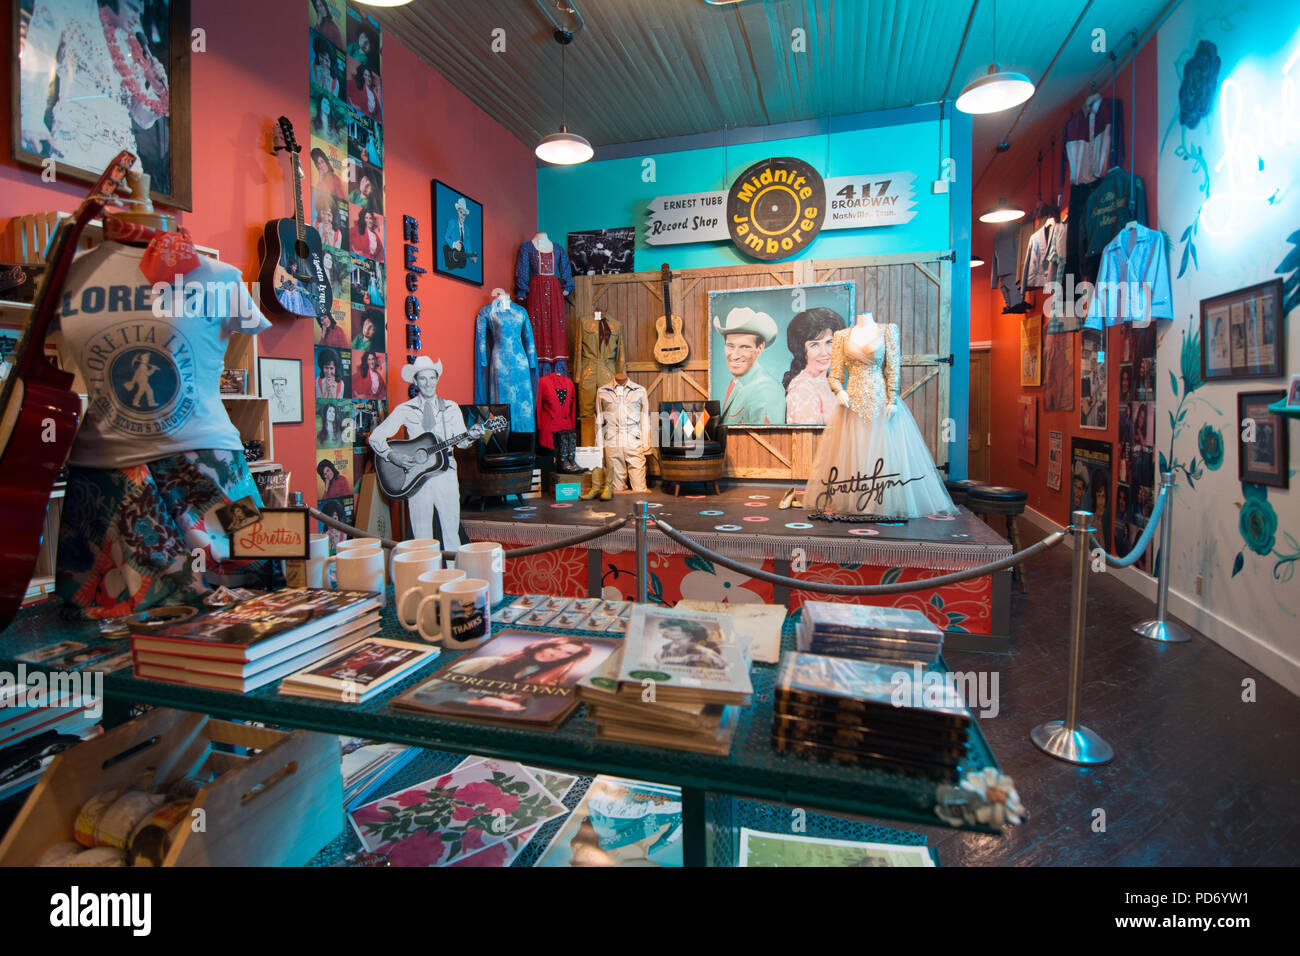 Costumes and memorabilia on display in the the famous Ernest Tubb Record Shop in Nashville, Tennessee, USA - Stock Image